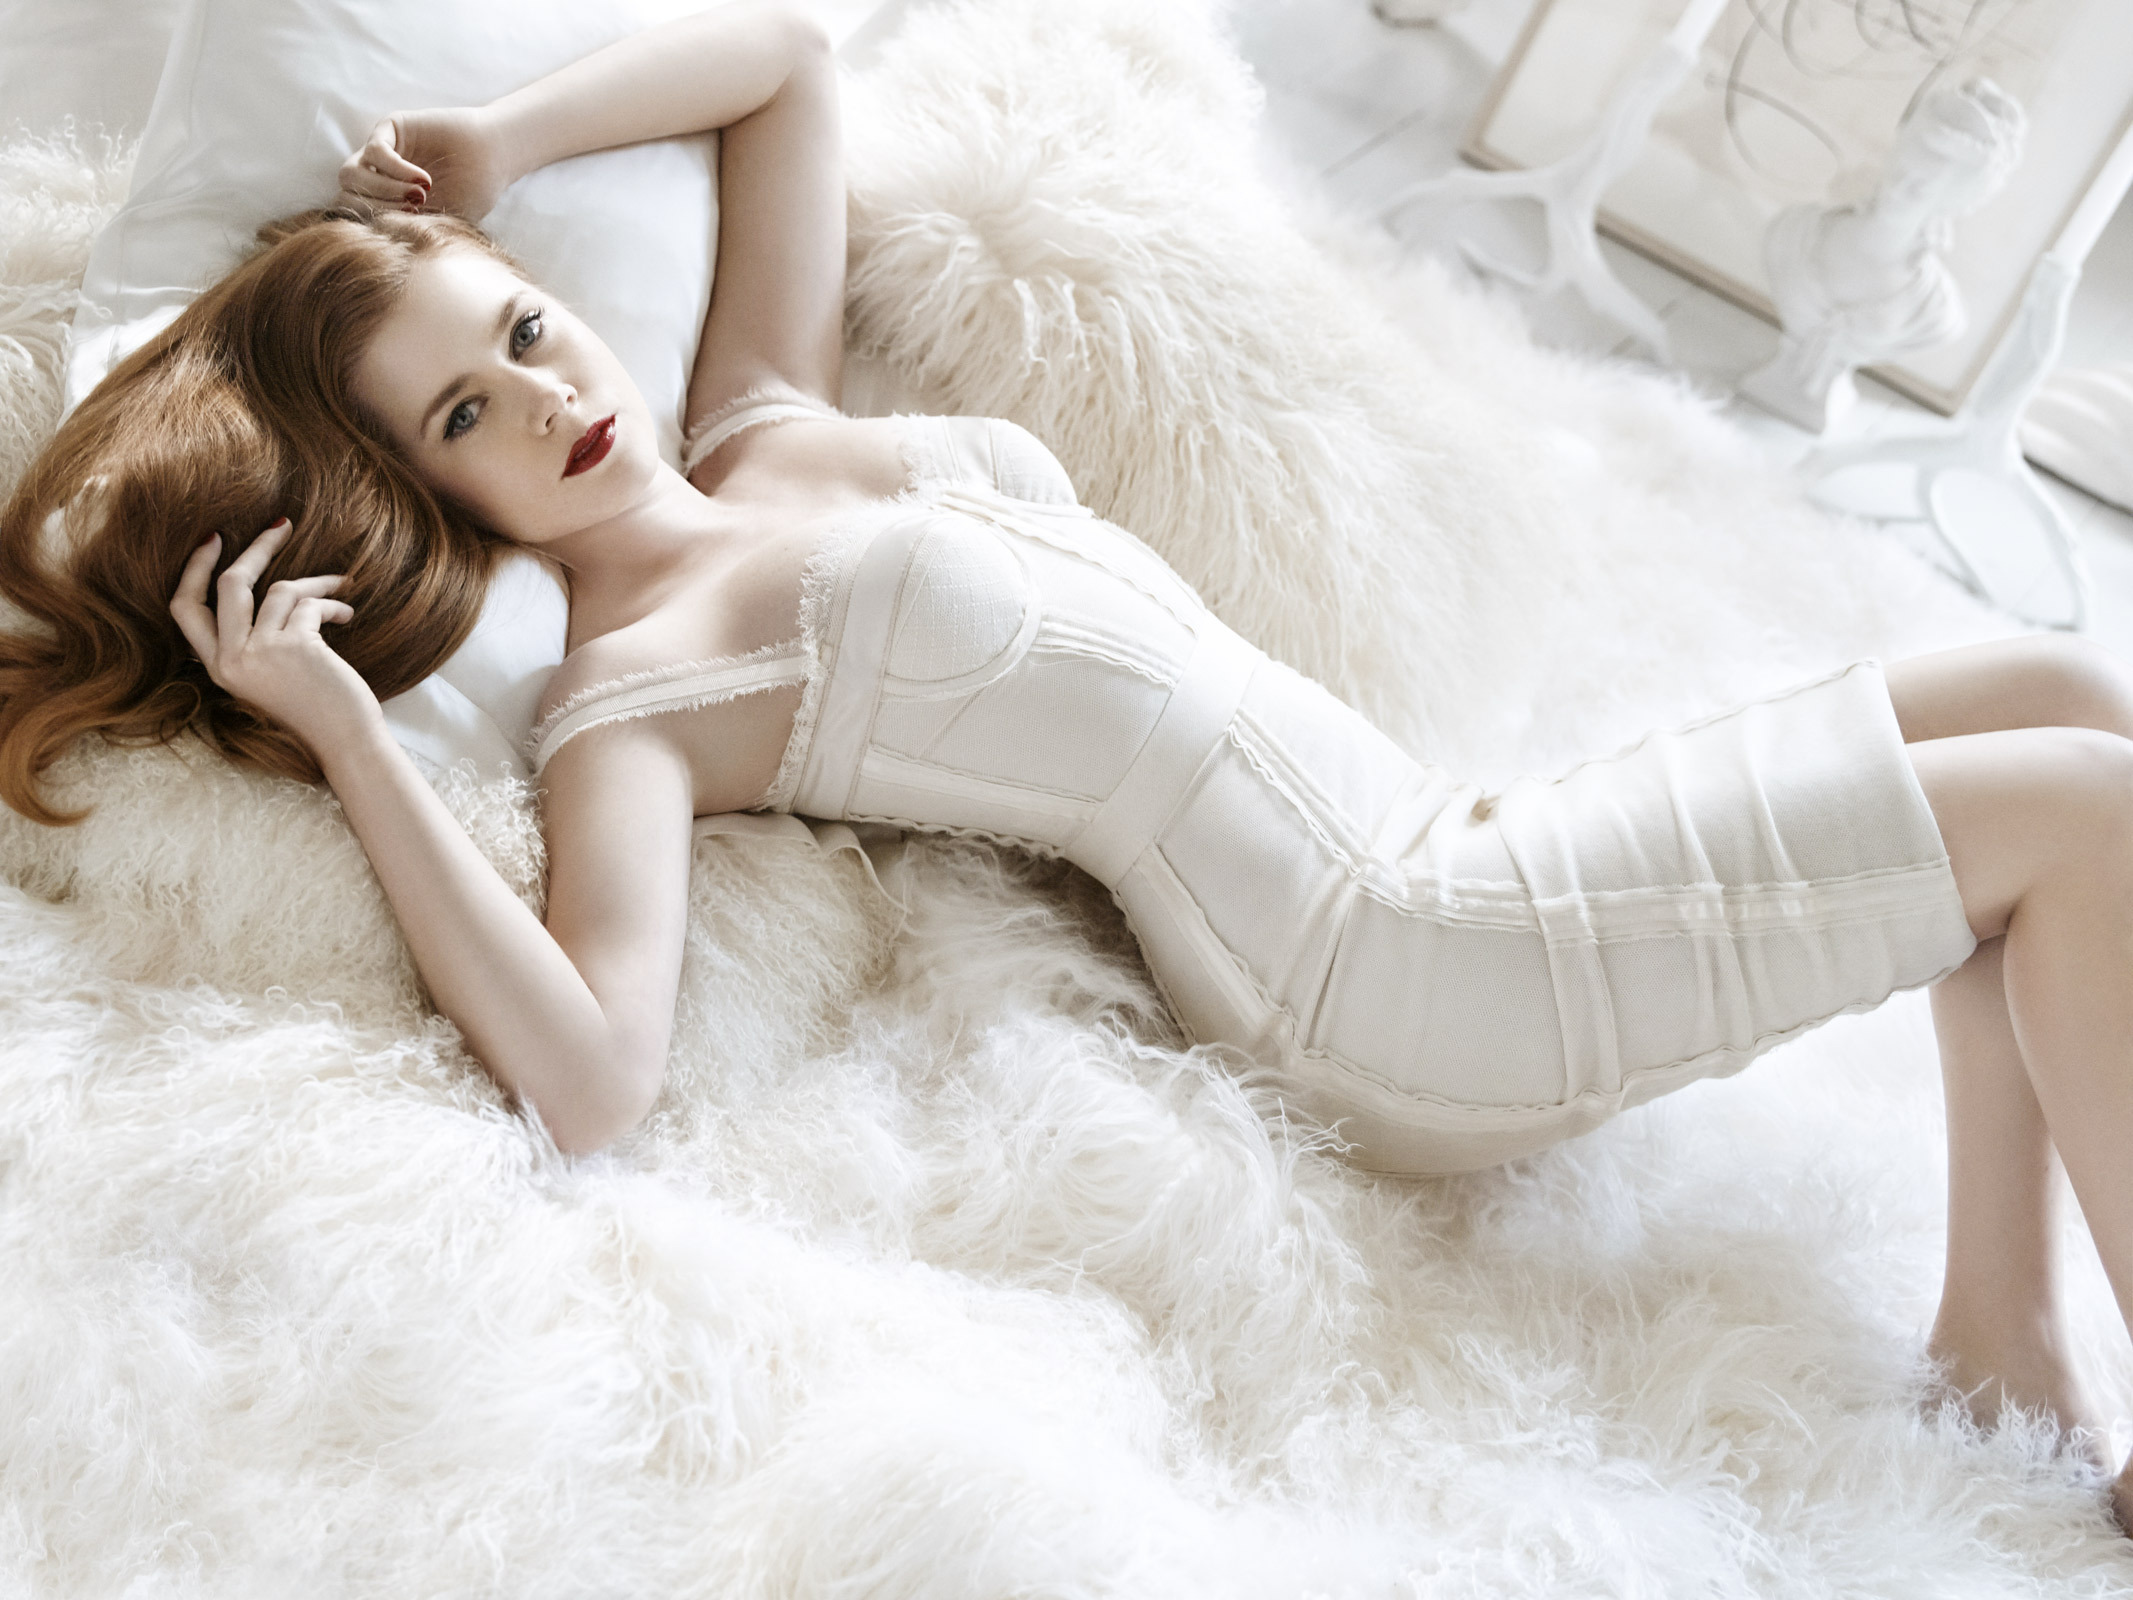 Wonderful Amy Adams Fantastic Stylish Still In White Bed Pose Hd Mobile Free Desktop Photo Background